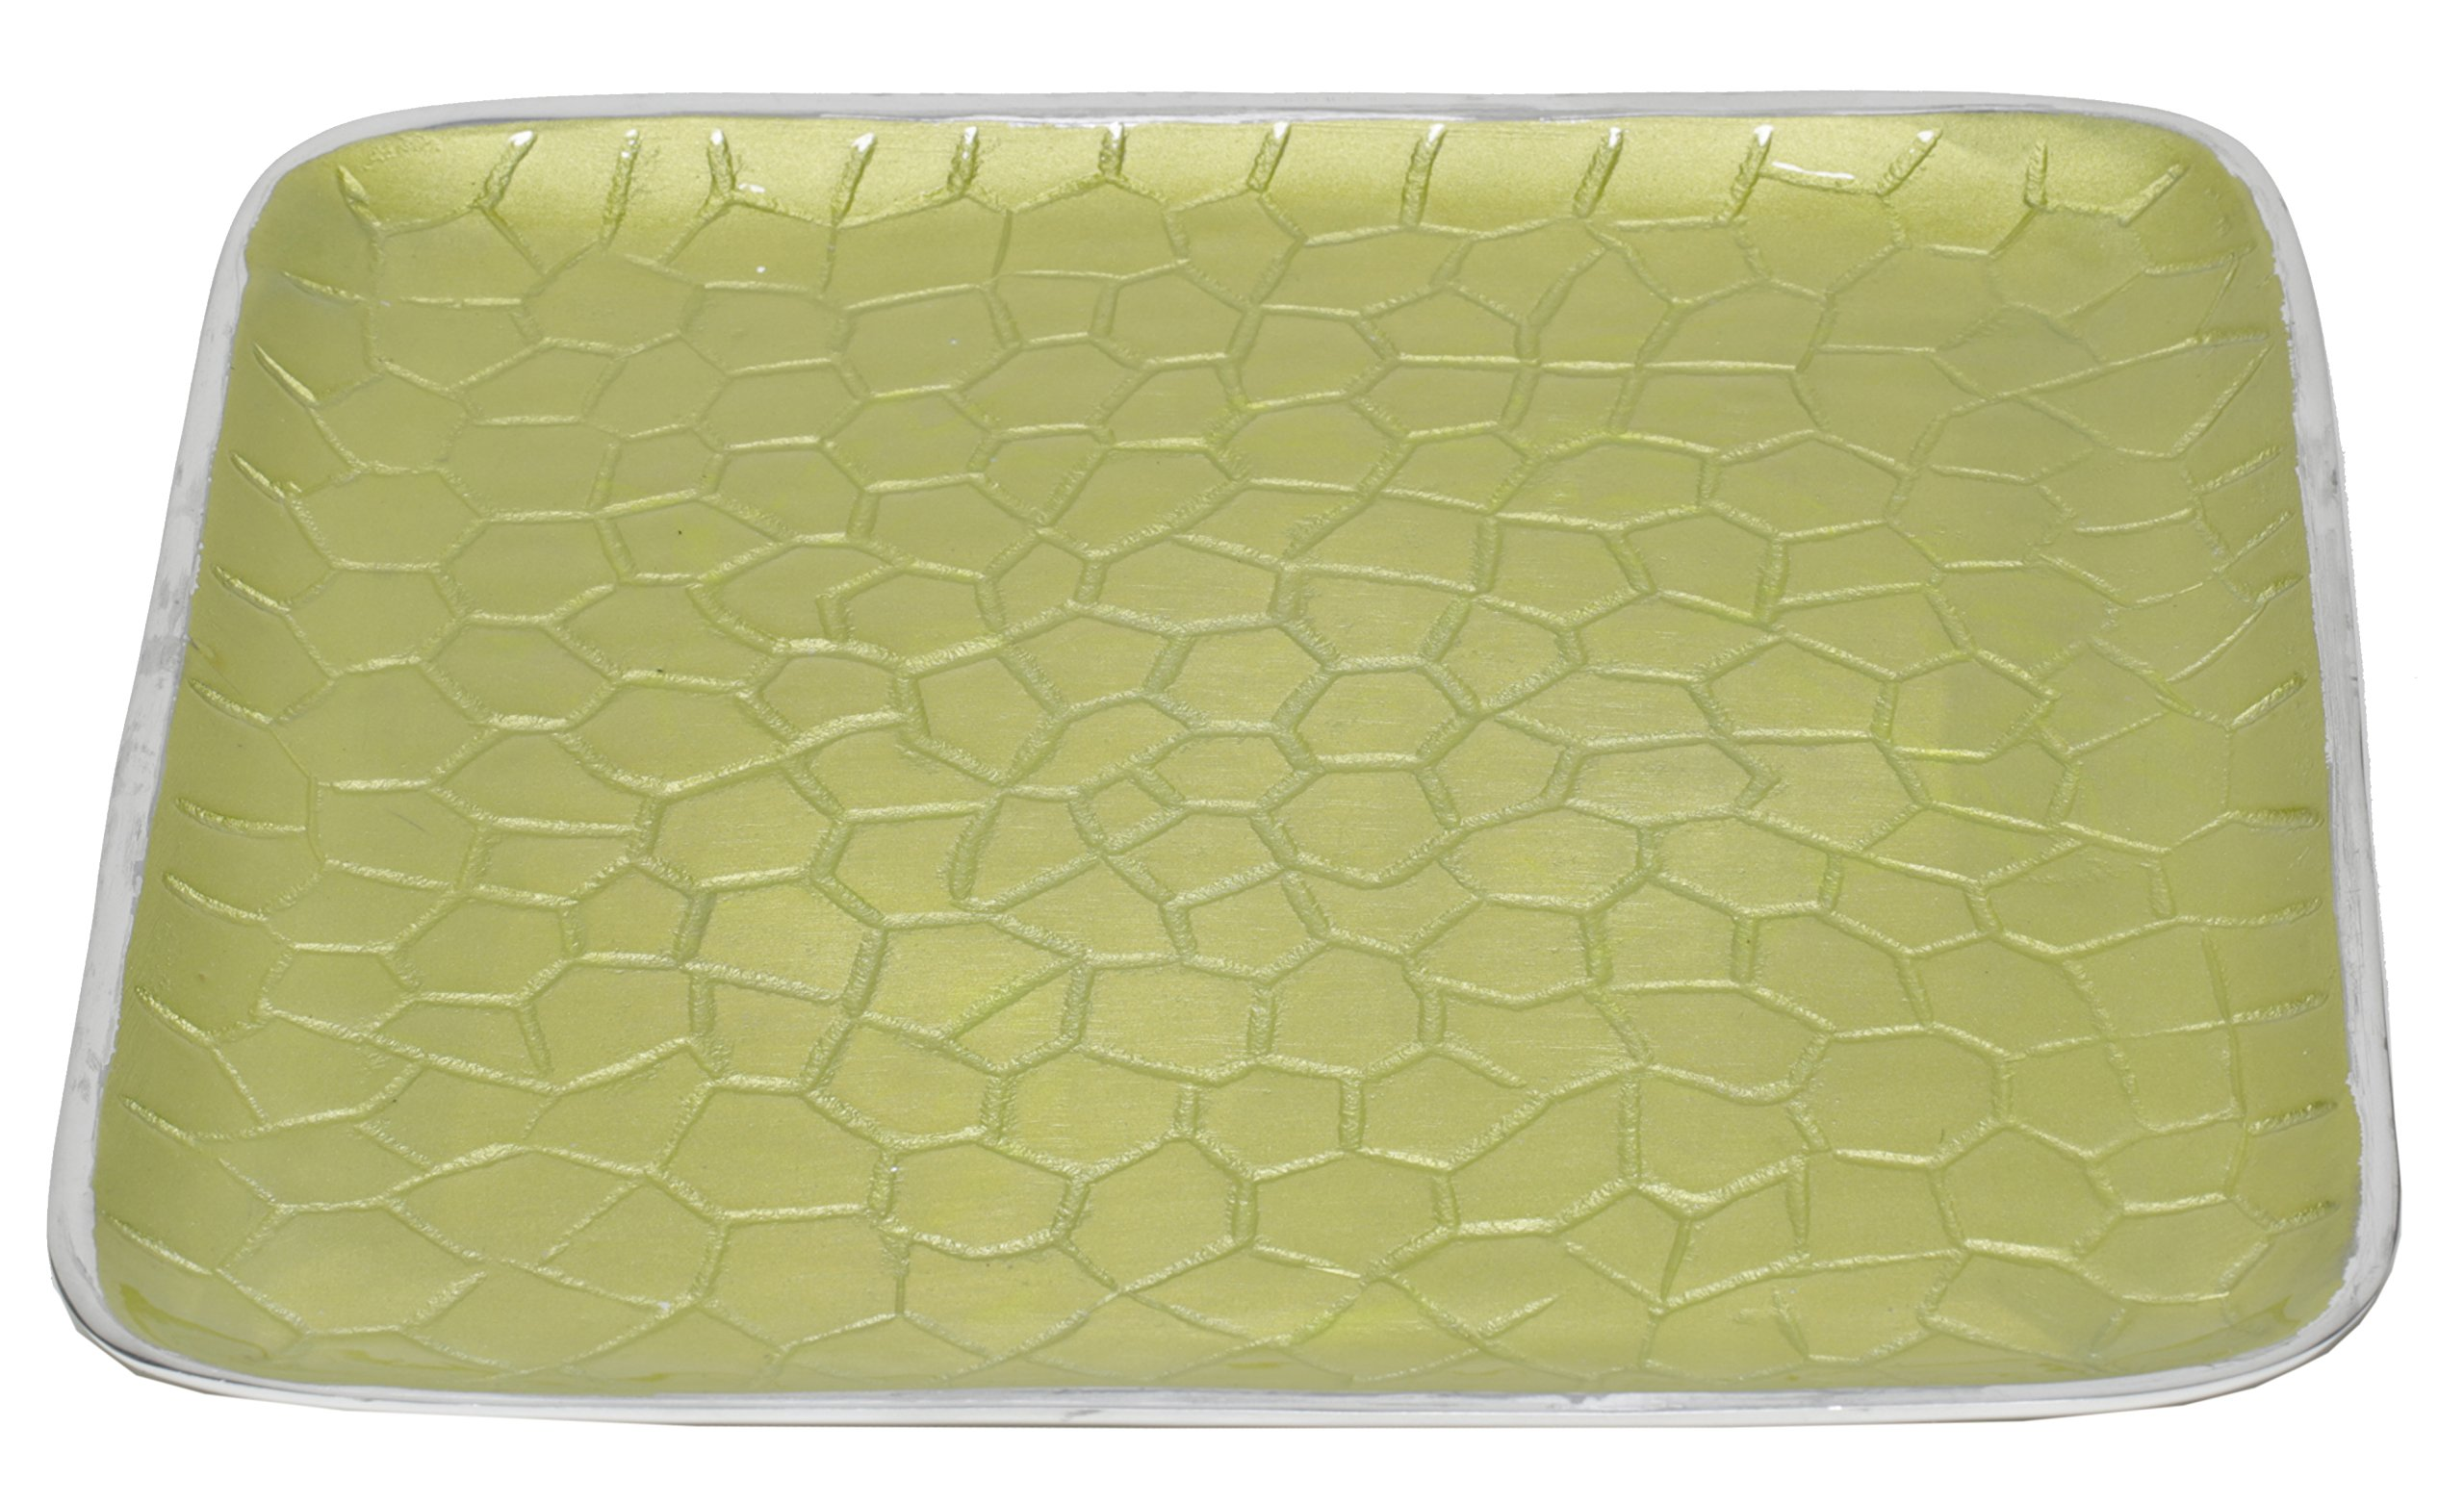 Artisan d'Orient Classic 8'' Square Tray, Color - Lime, Set of 4